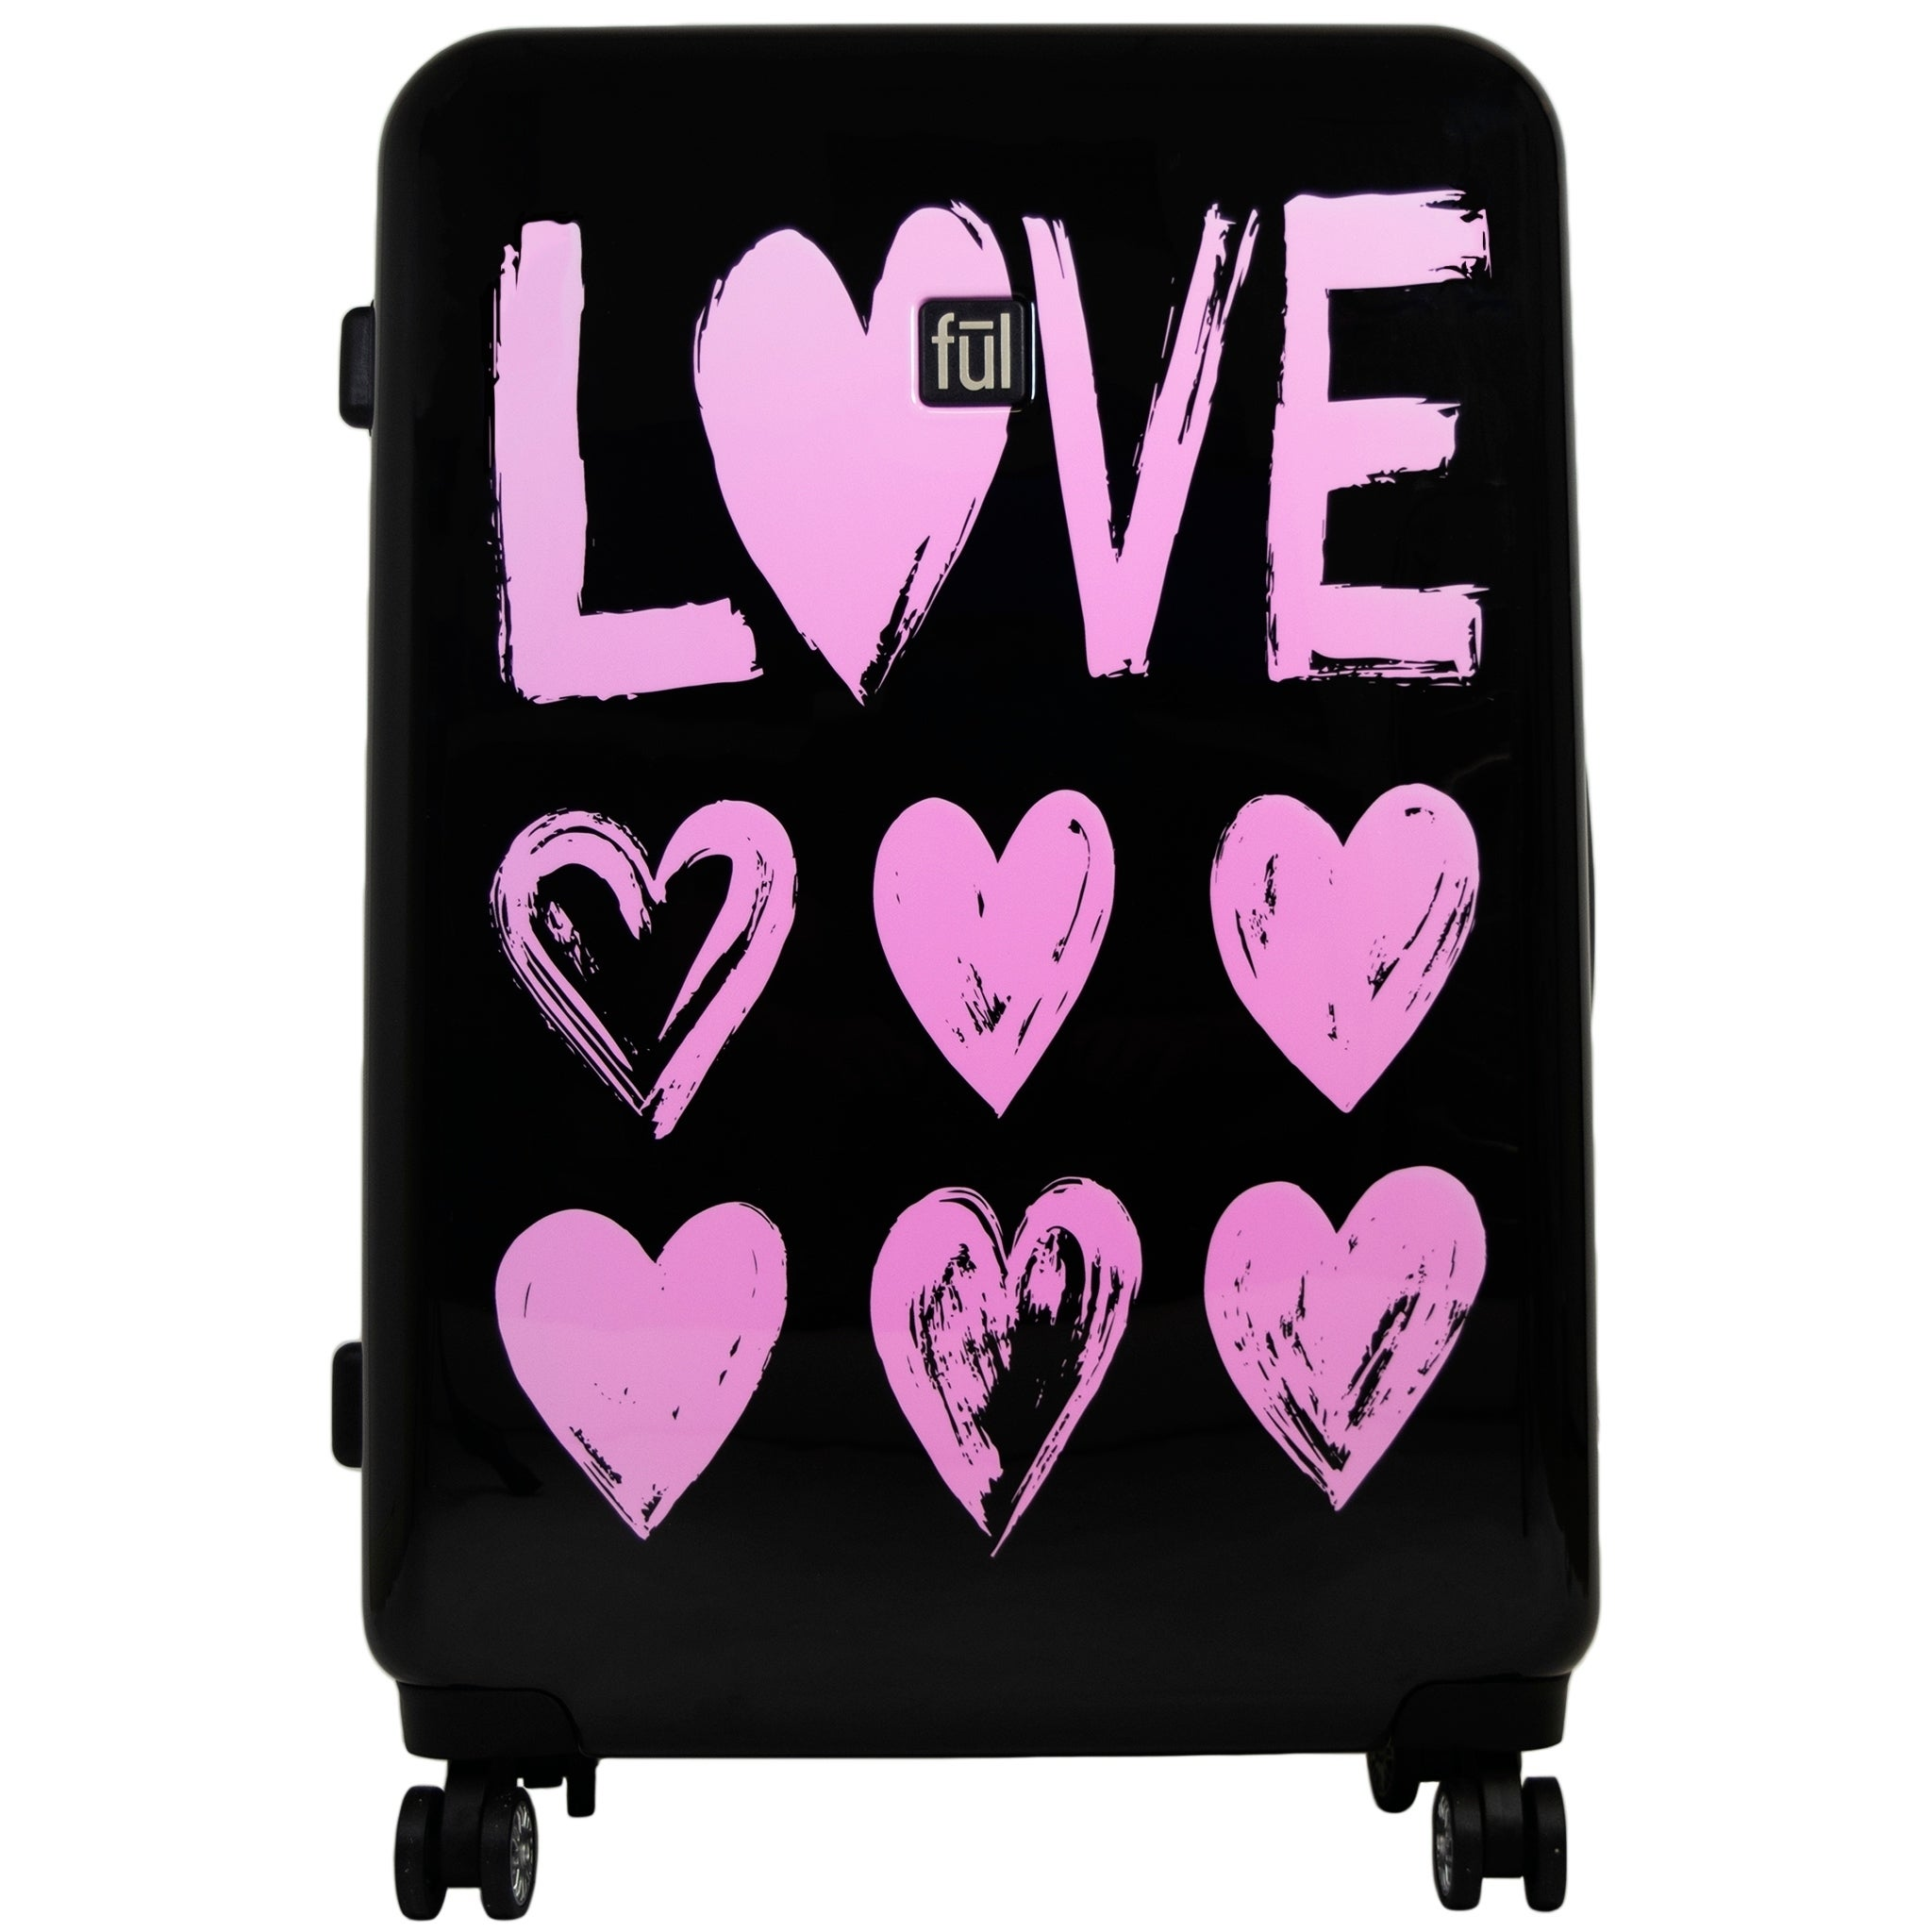 84404182b Shop Ful Love 29in Hard Sided Rolling Suitcase, Pink Print on Black  Background - 29 - Free Shipping Today - Overstock - 23387049